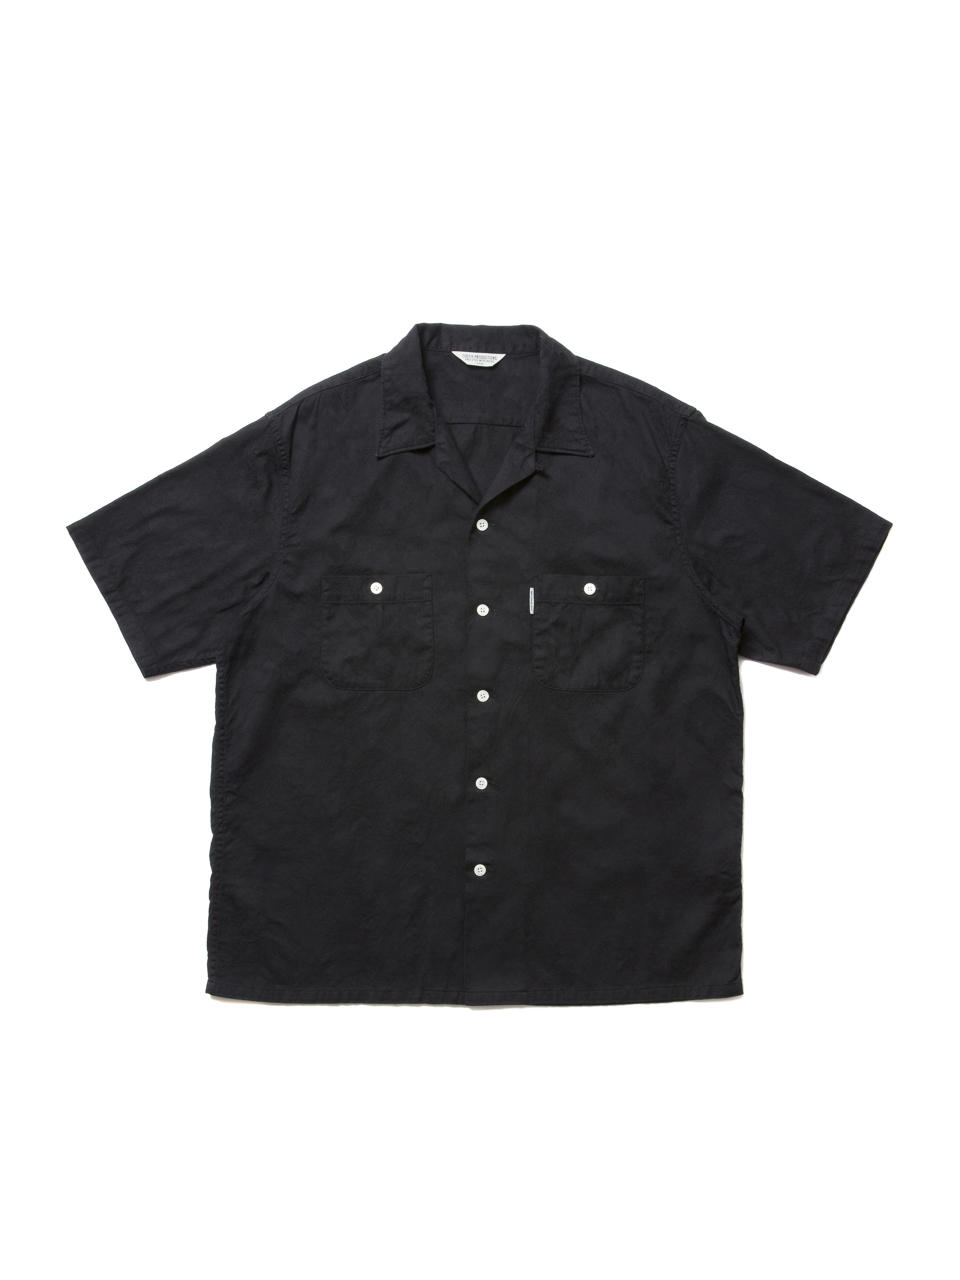 COOTIE Paisley Open-Neck S/S Shirt